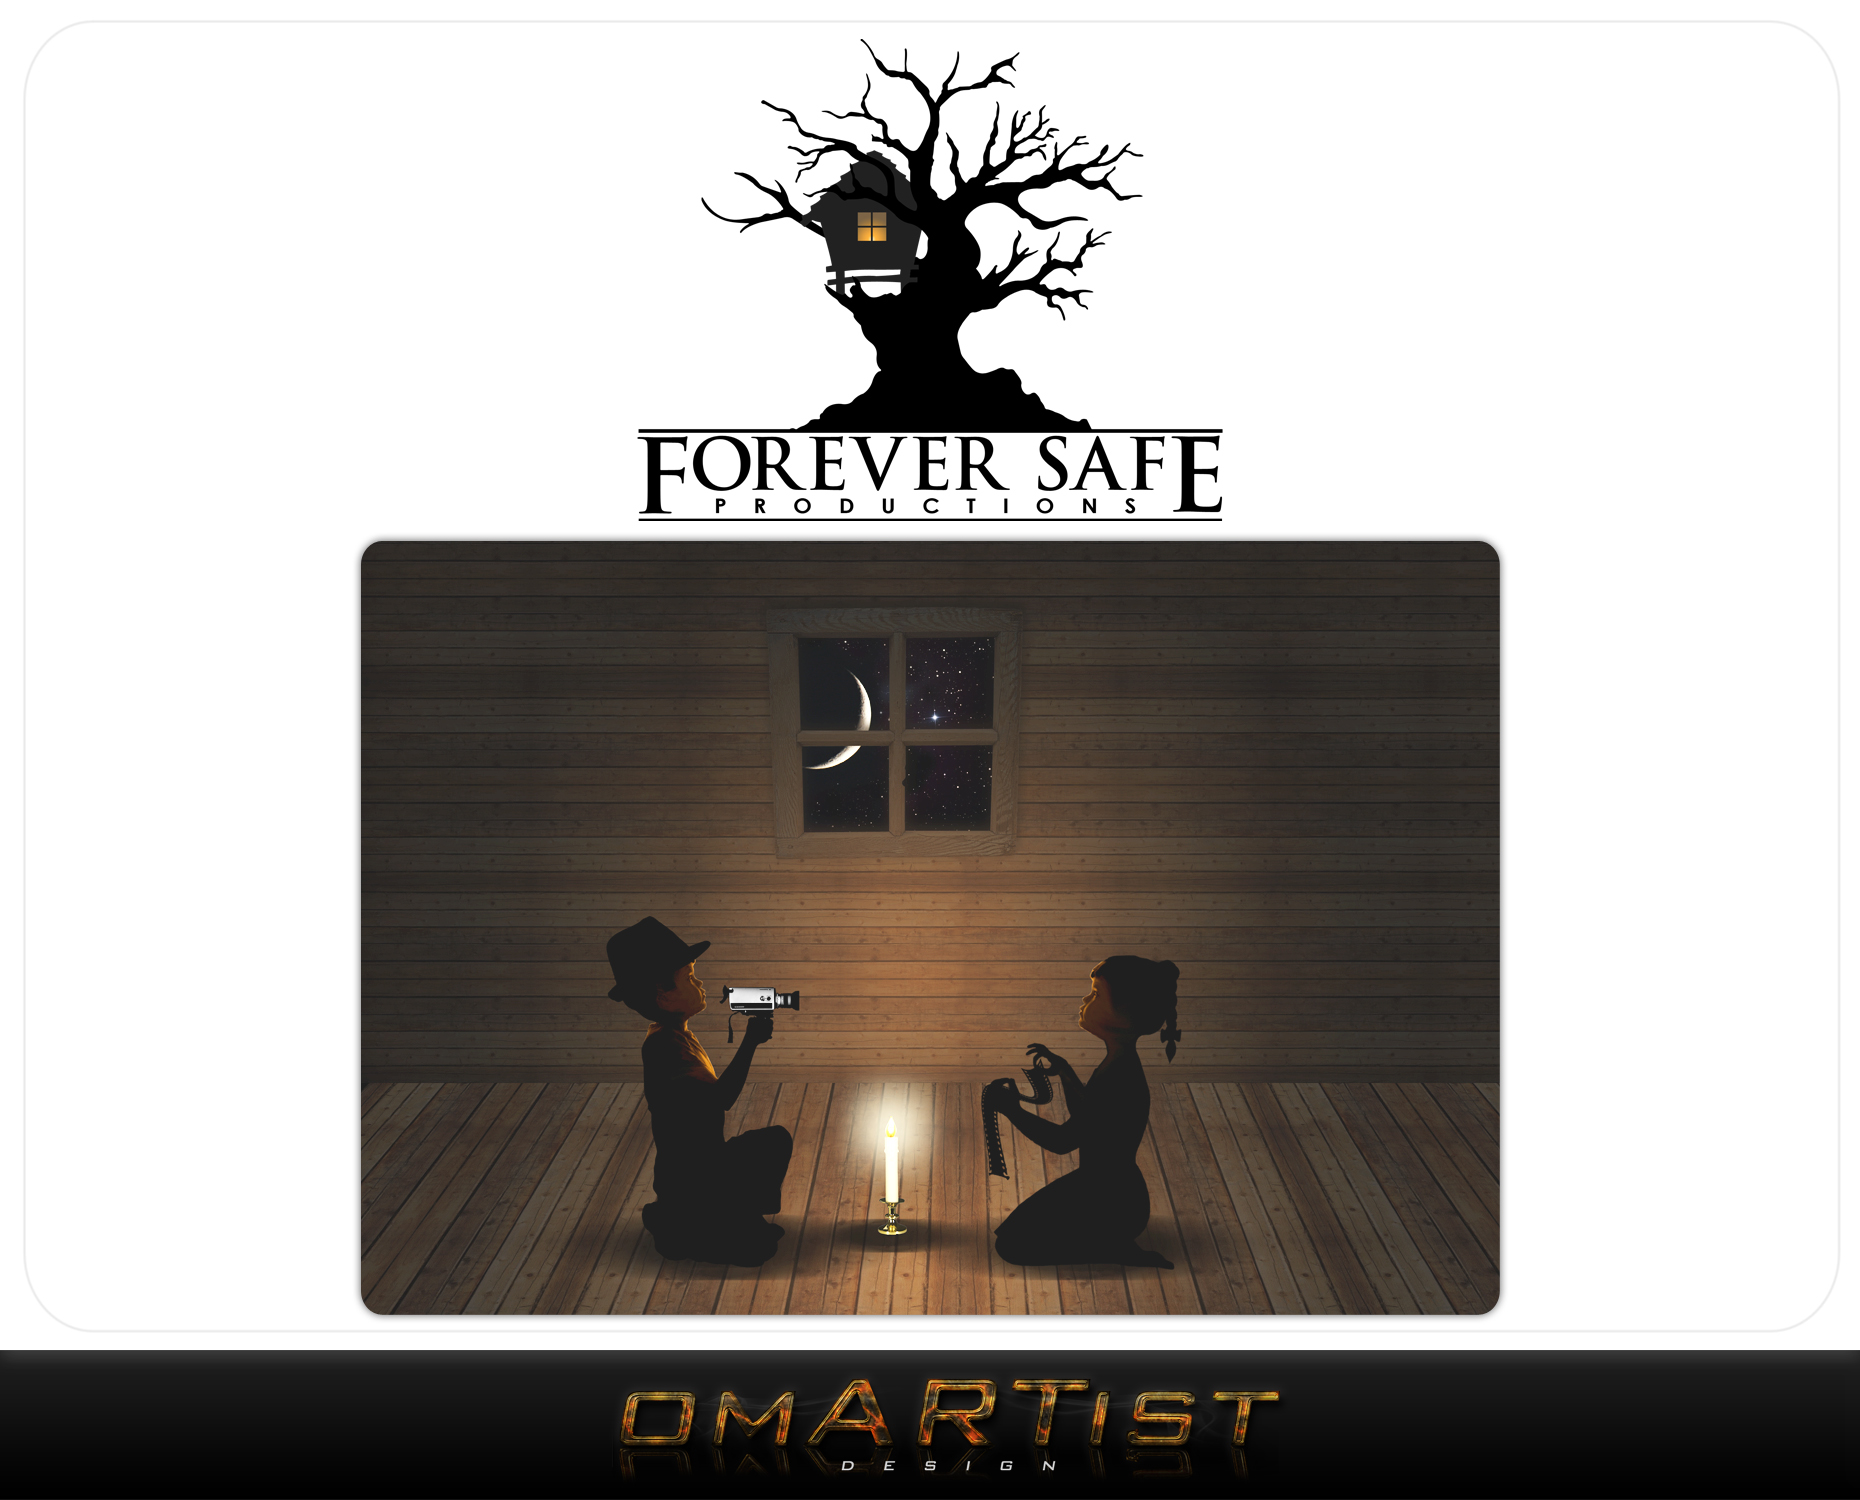 Logo Design by omARTist - Entry No. 44 in the Logo Design Contest Inspiring Logo Design for Forever Safe Productions.